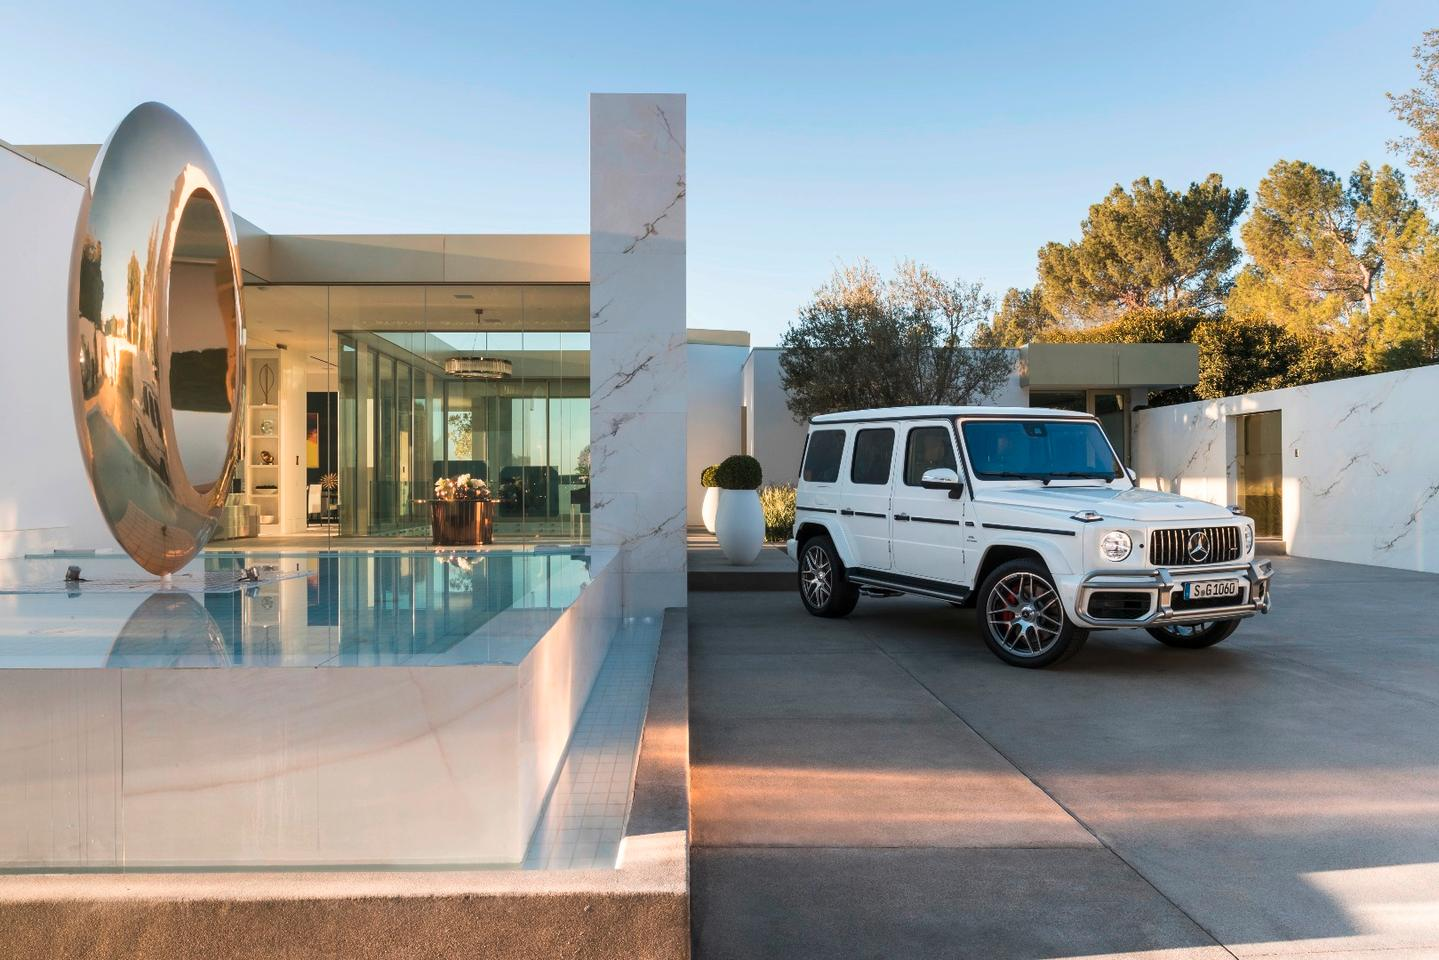 Mercedes ups the new G-Class' performance with G 63